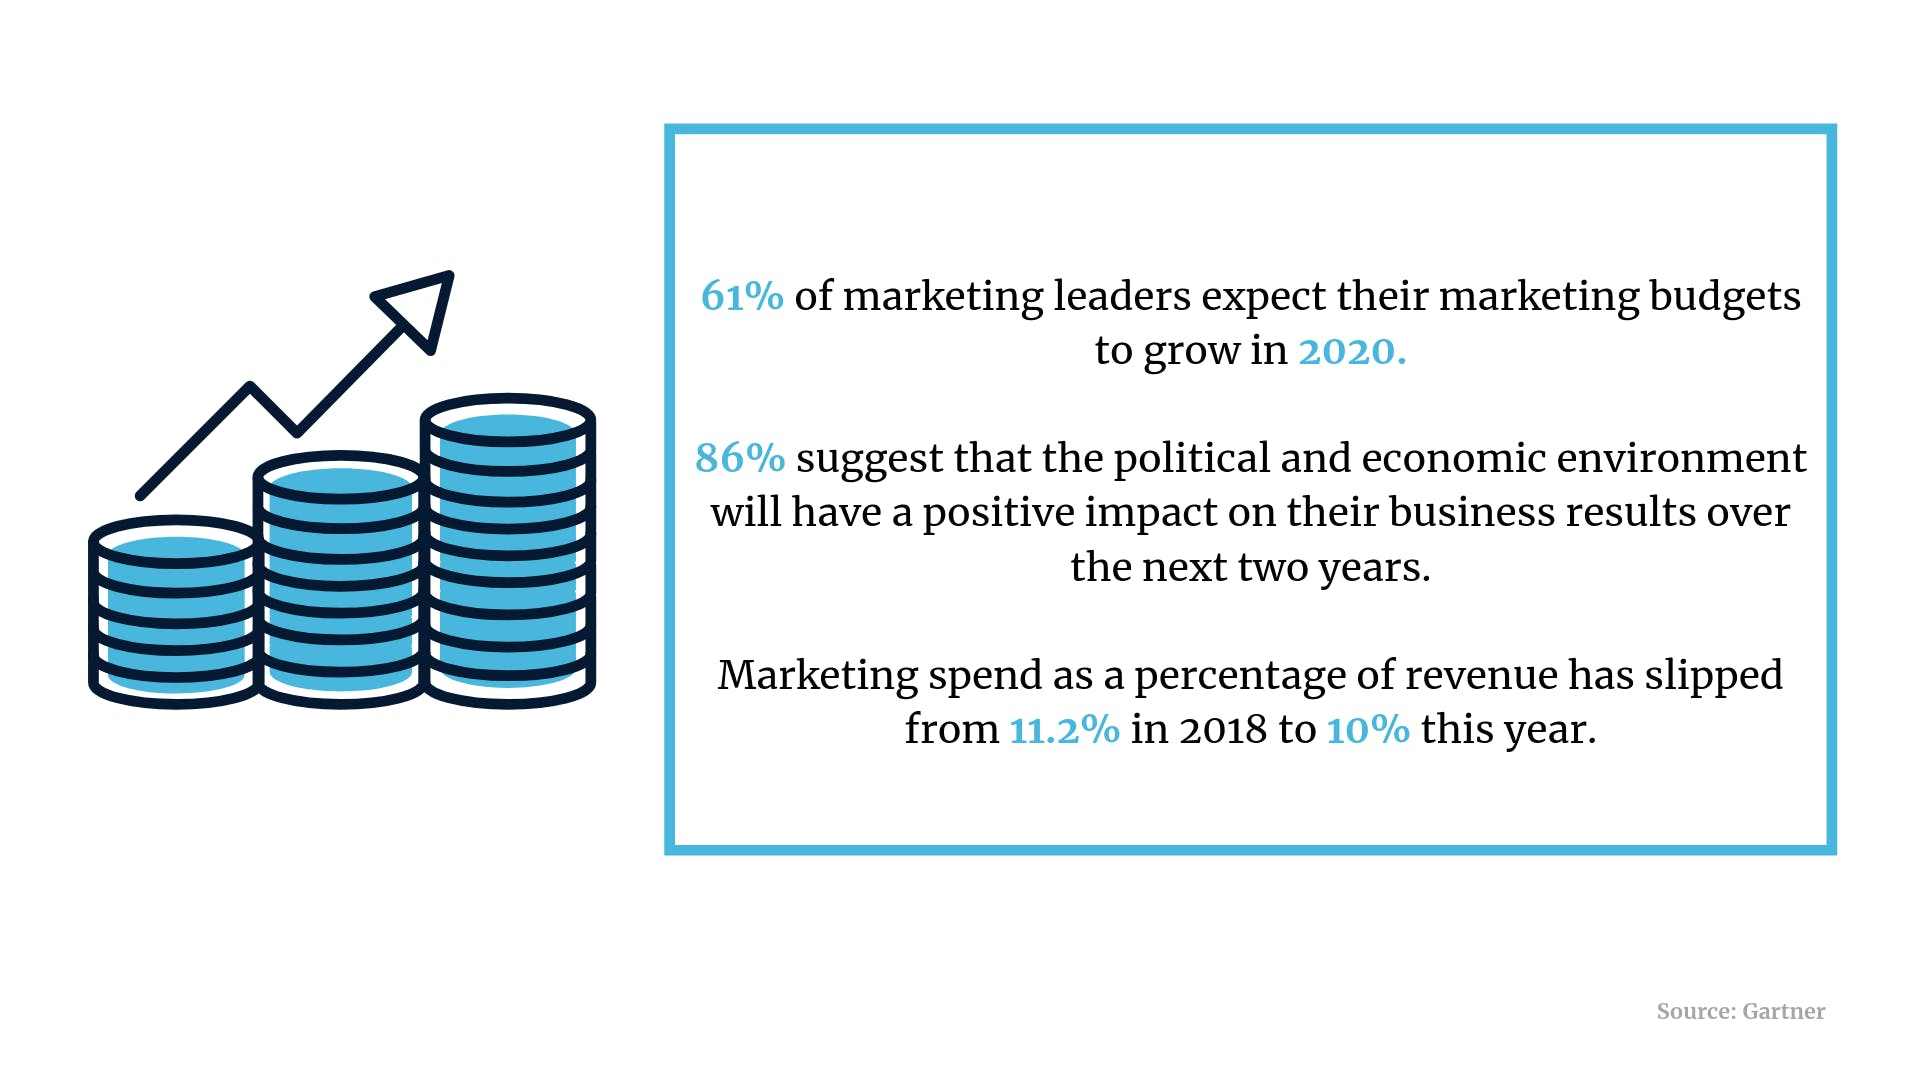 Marketing budgets, email marketing, GDPR training: 5 killer stats to start your week